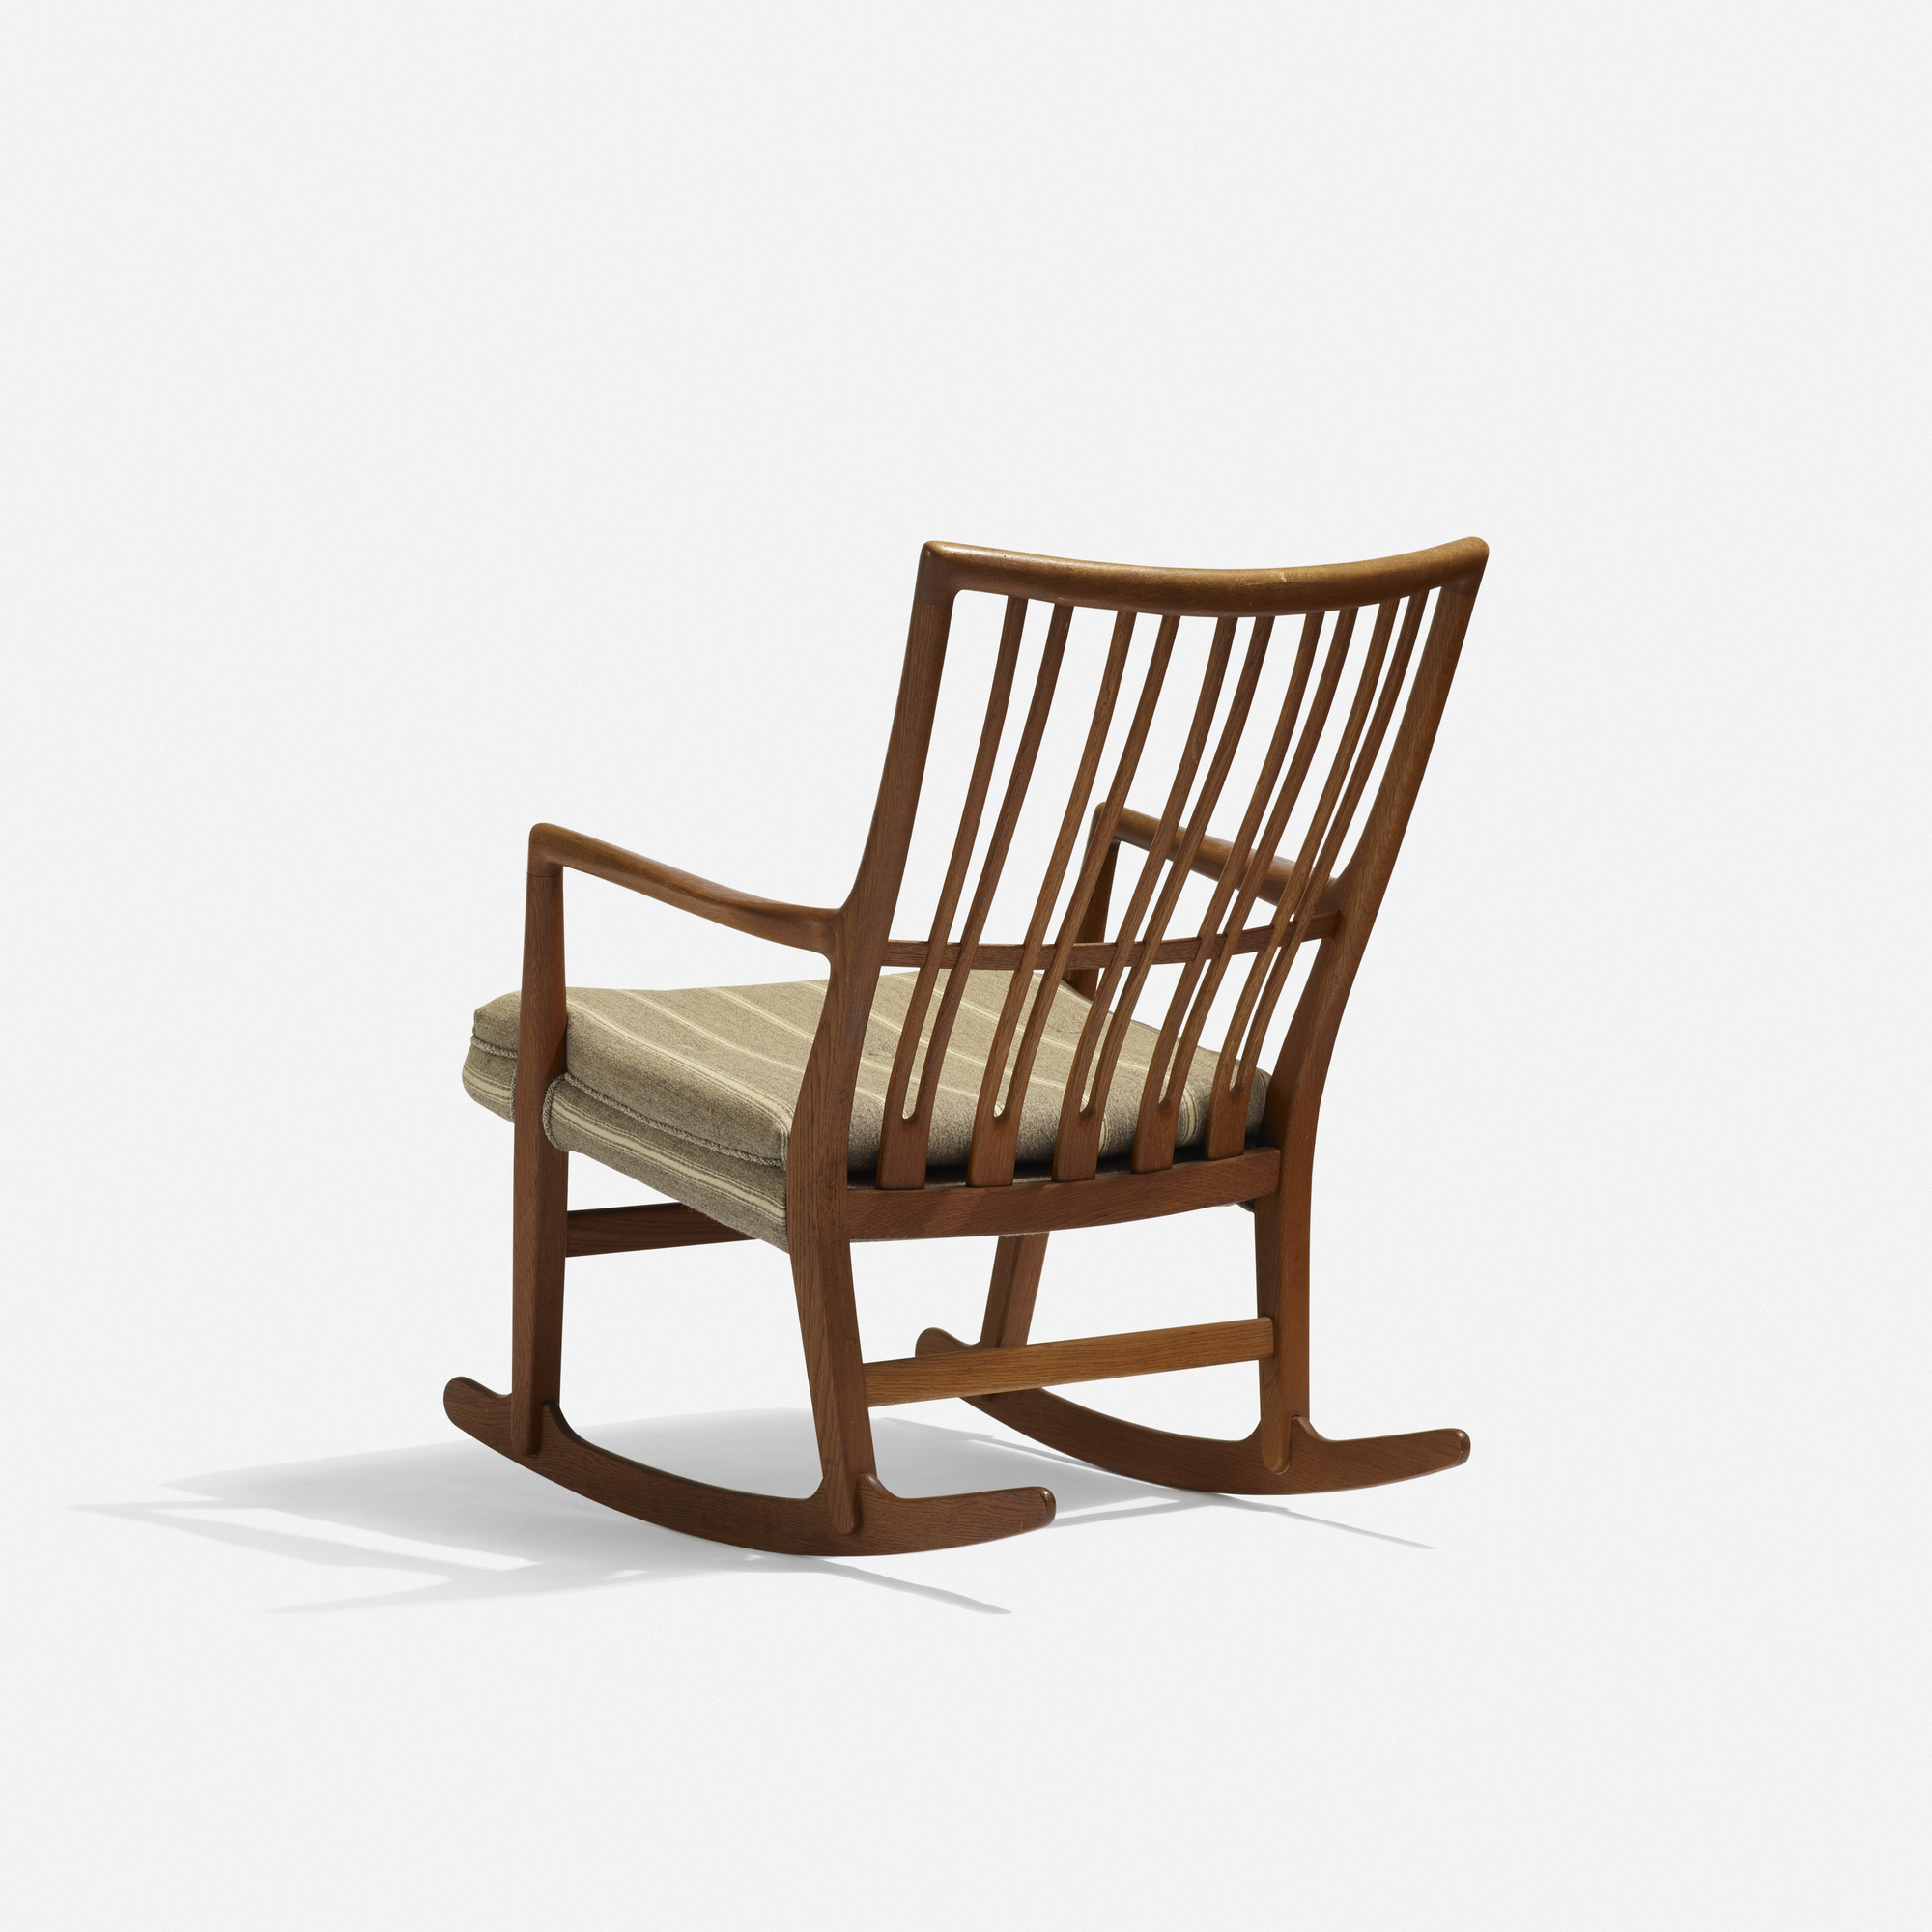 Delicieux 274: Hans J. Wegner / Rocking Chair (1 Of 3)